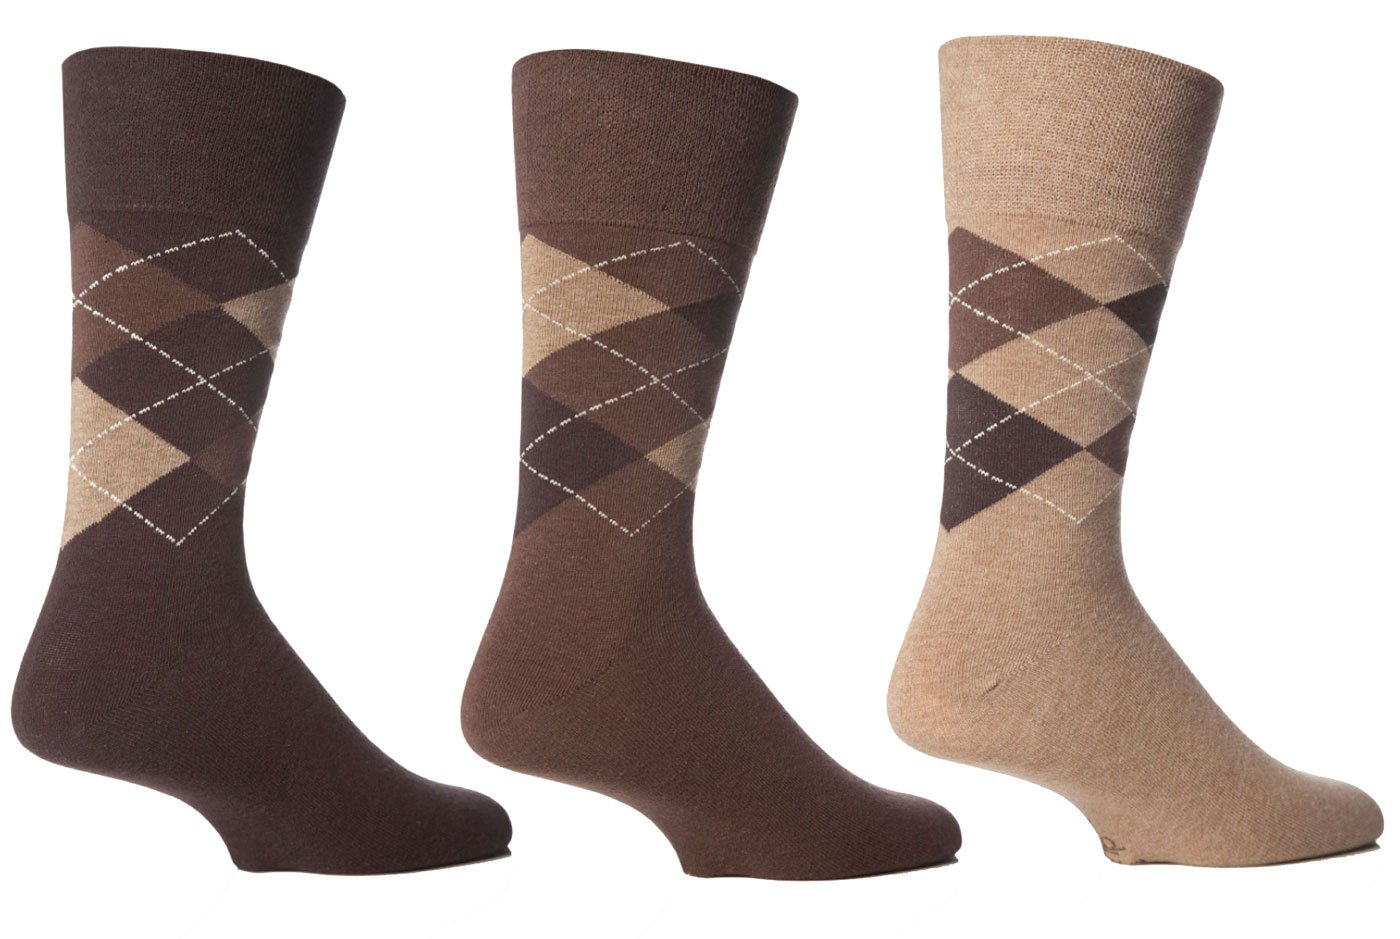 3 Pairs Mens Gentle Grip HoneyCombe Top Non Elastic Socks by Drew Brady / Various Colour Designs to Choose From / UK Sizes 6-11 and 12-14